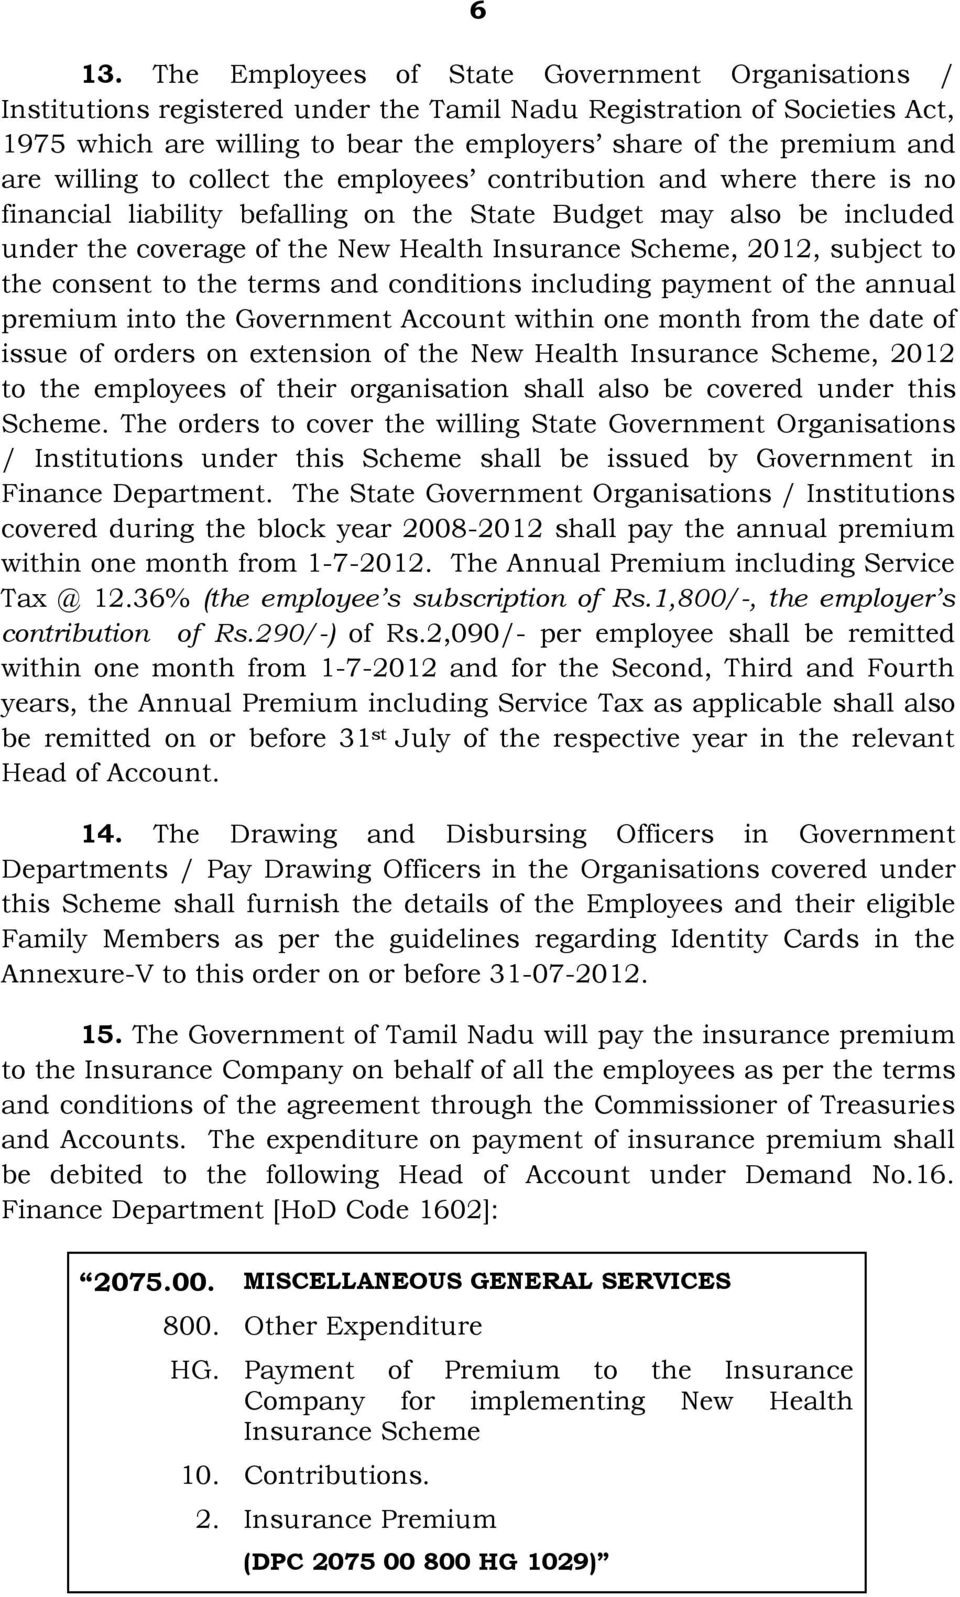 Scheme, 2012, subject to the consent to the terms and conditions including payment of the annual premium into the Government Account within one month from the date of issue of orders on extension of